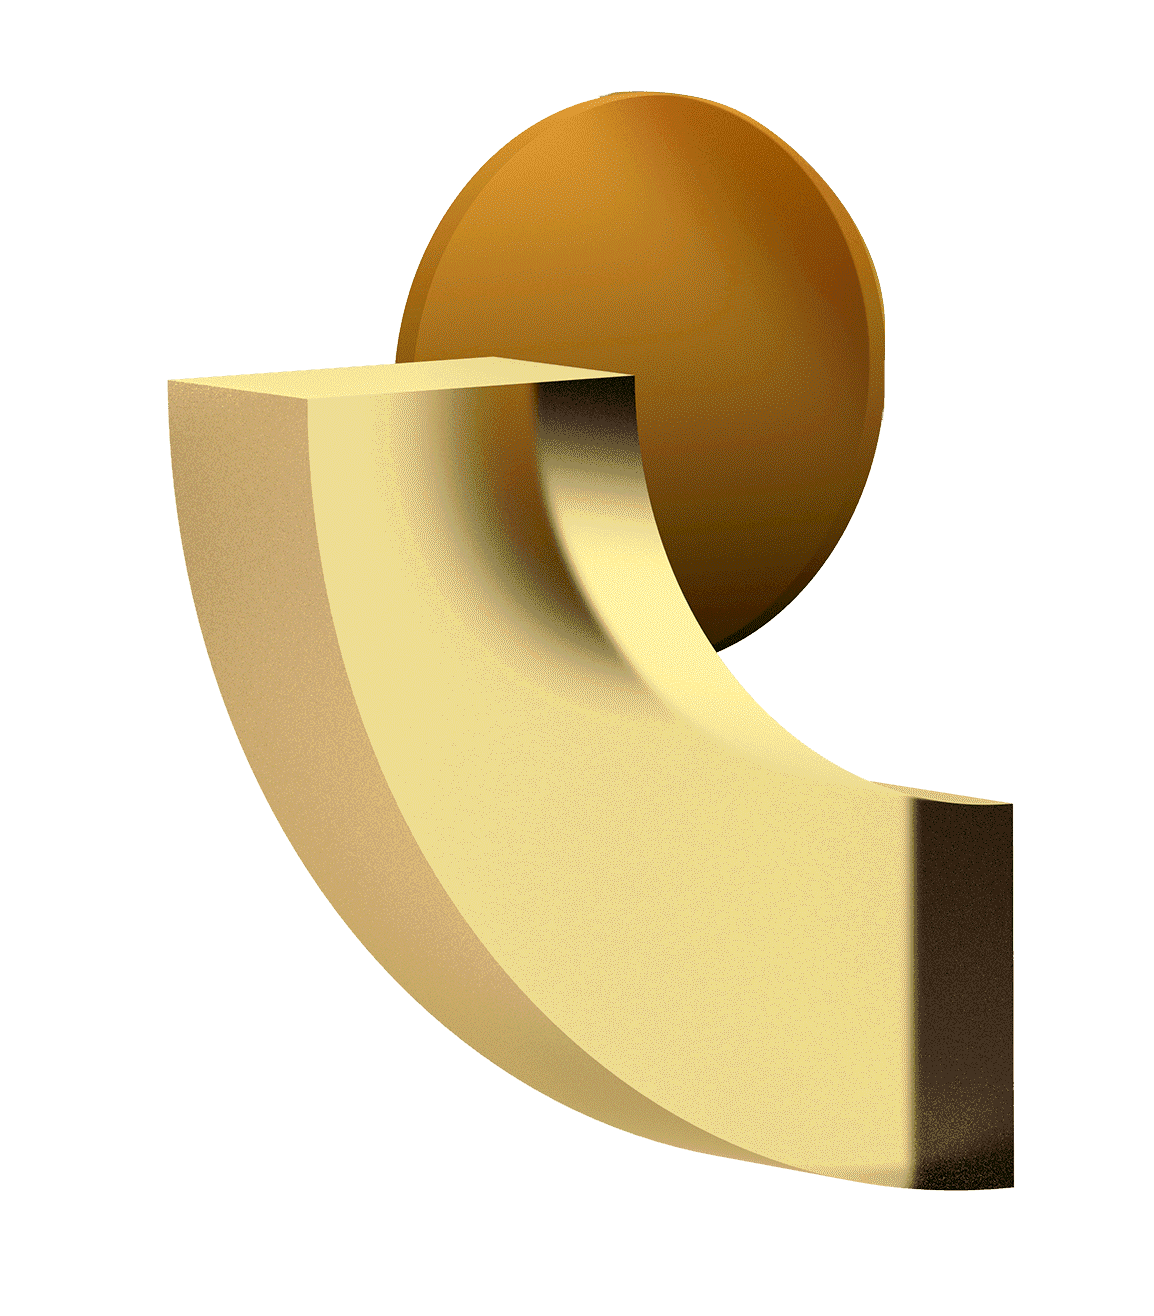 Shapes, Yellow, 3D